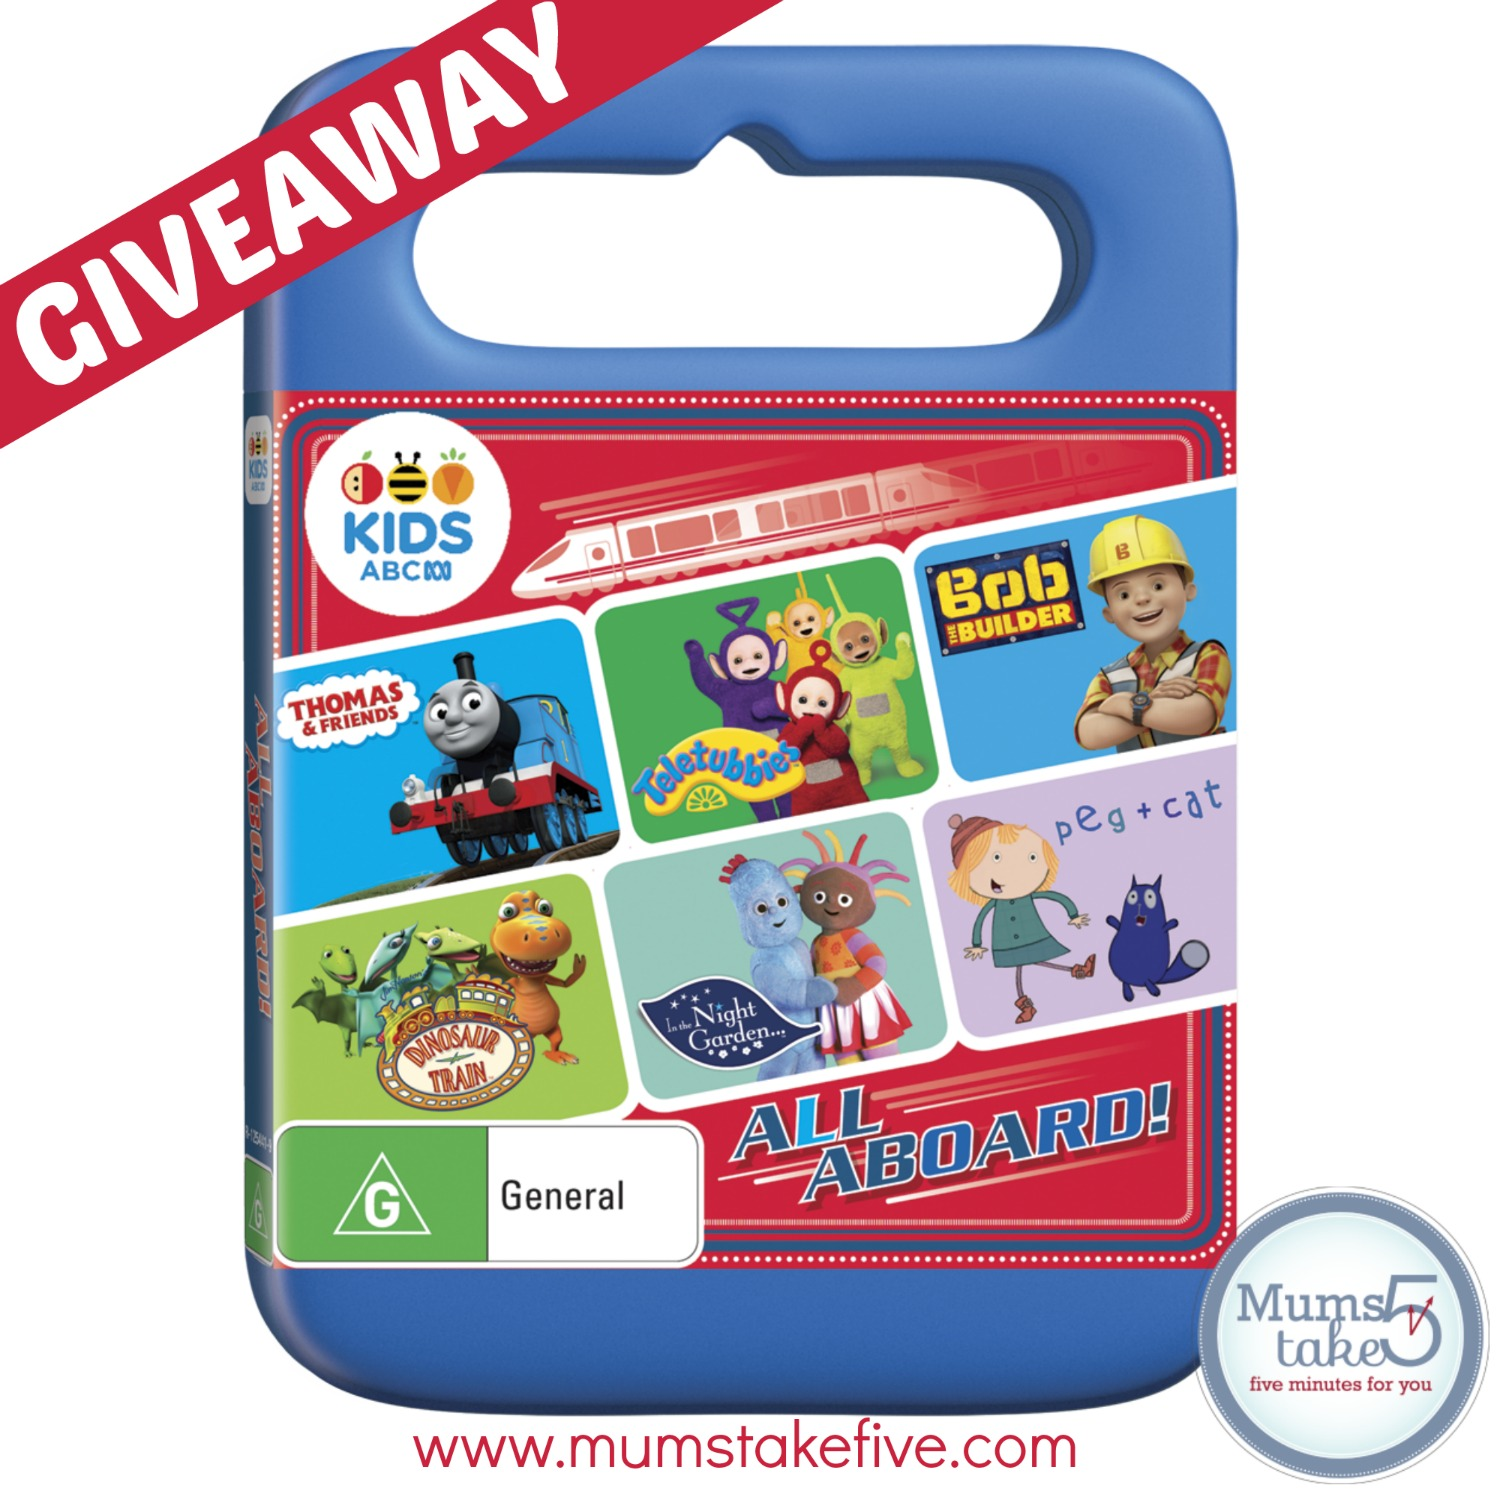 All Aboard ABC KIDS pilation DVD Giveaway